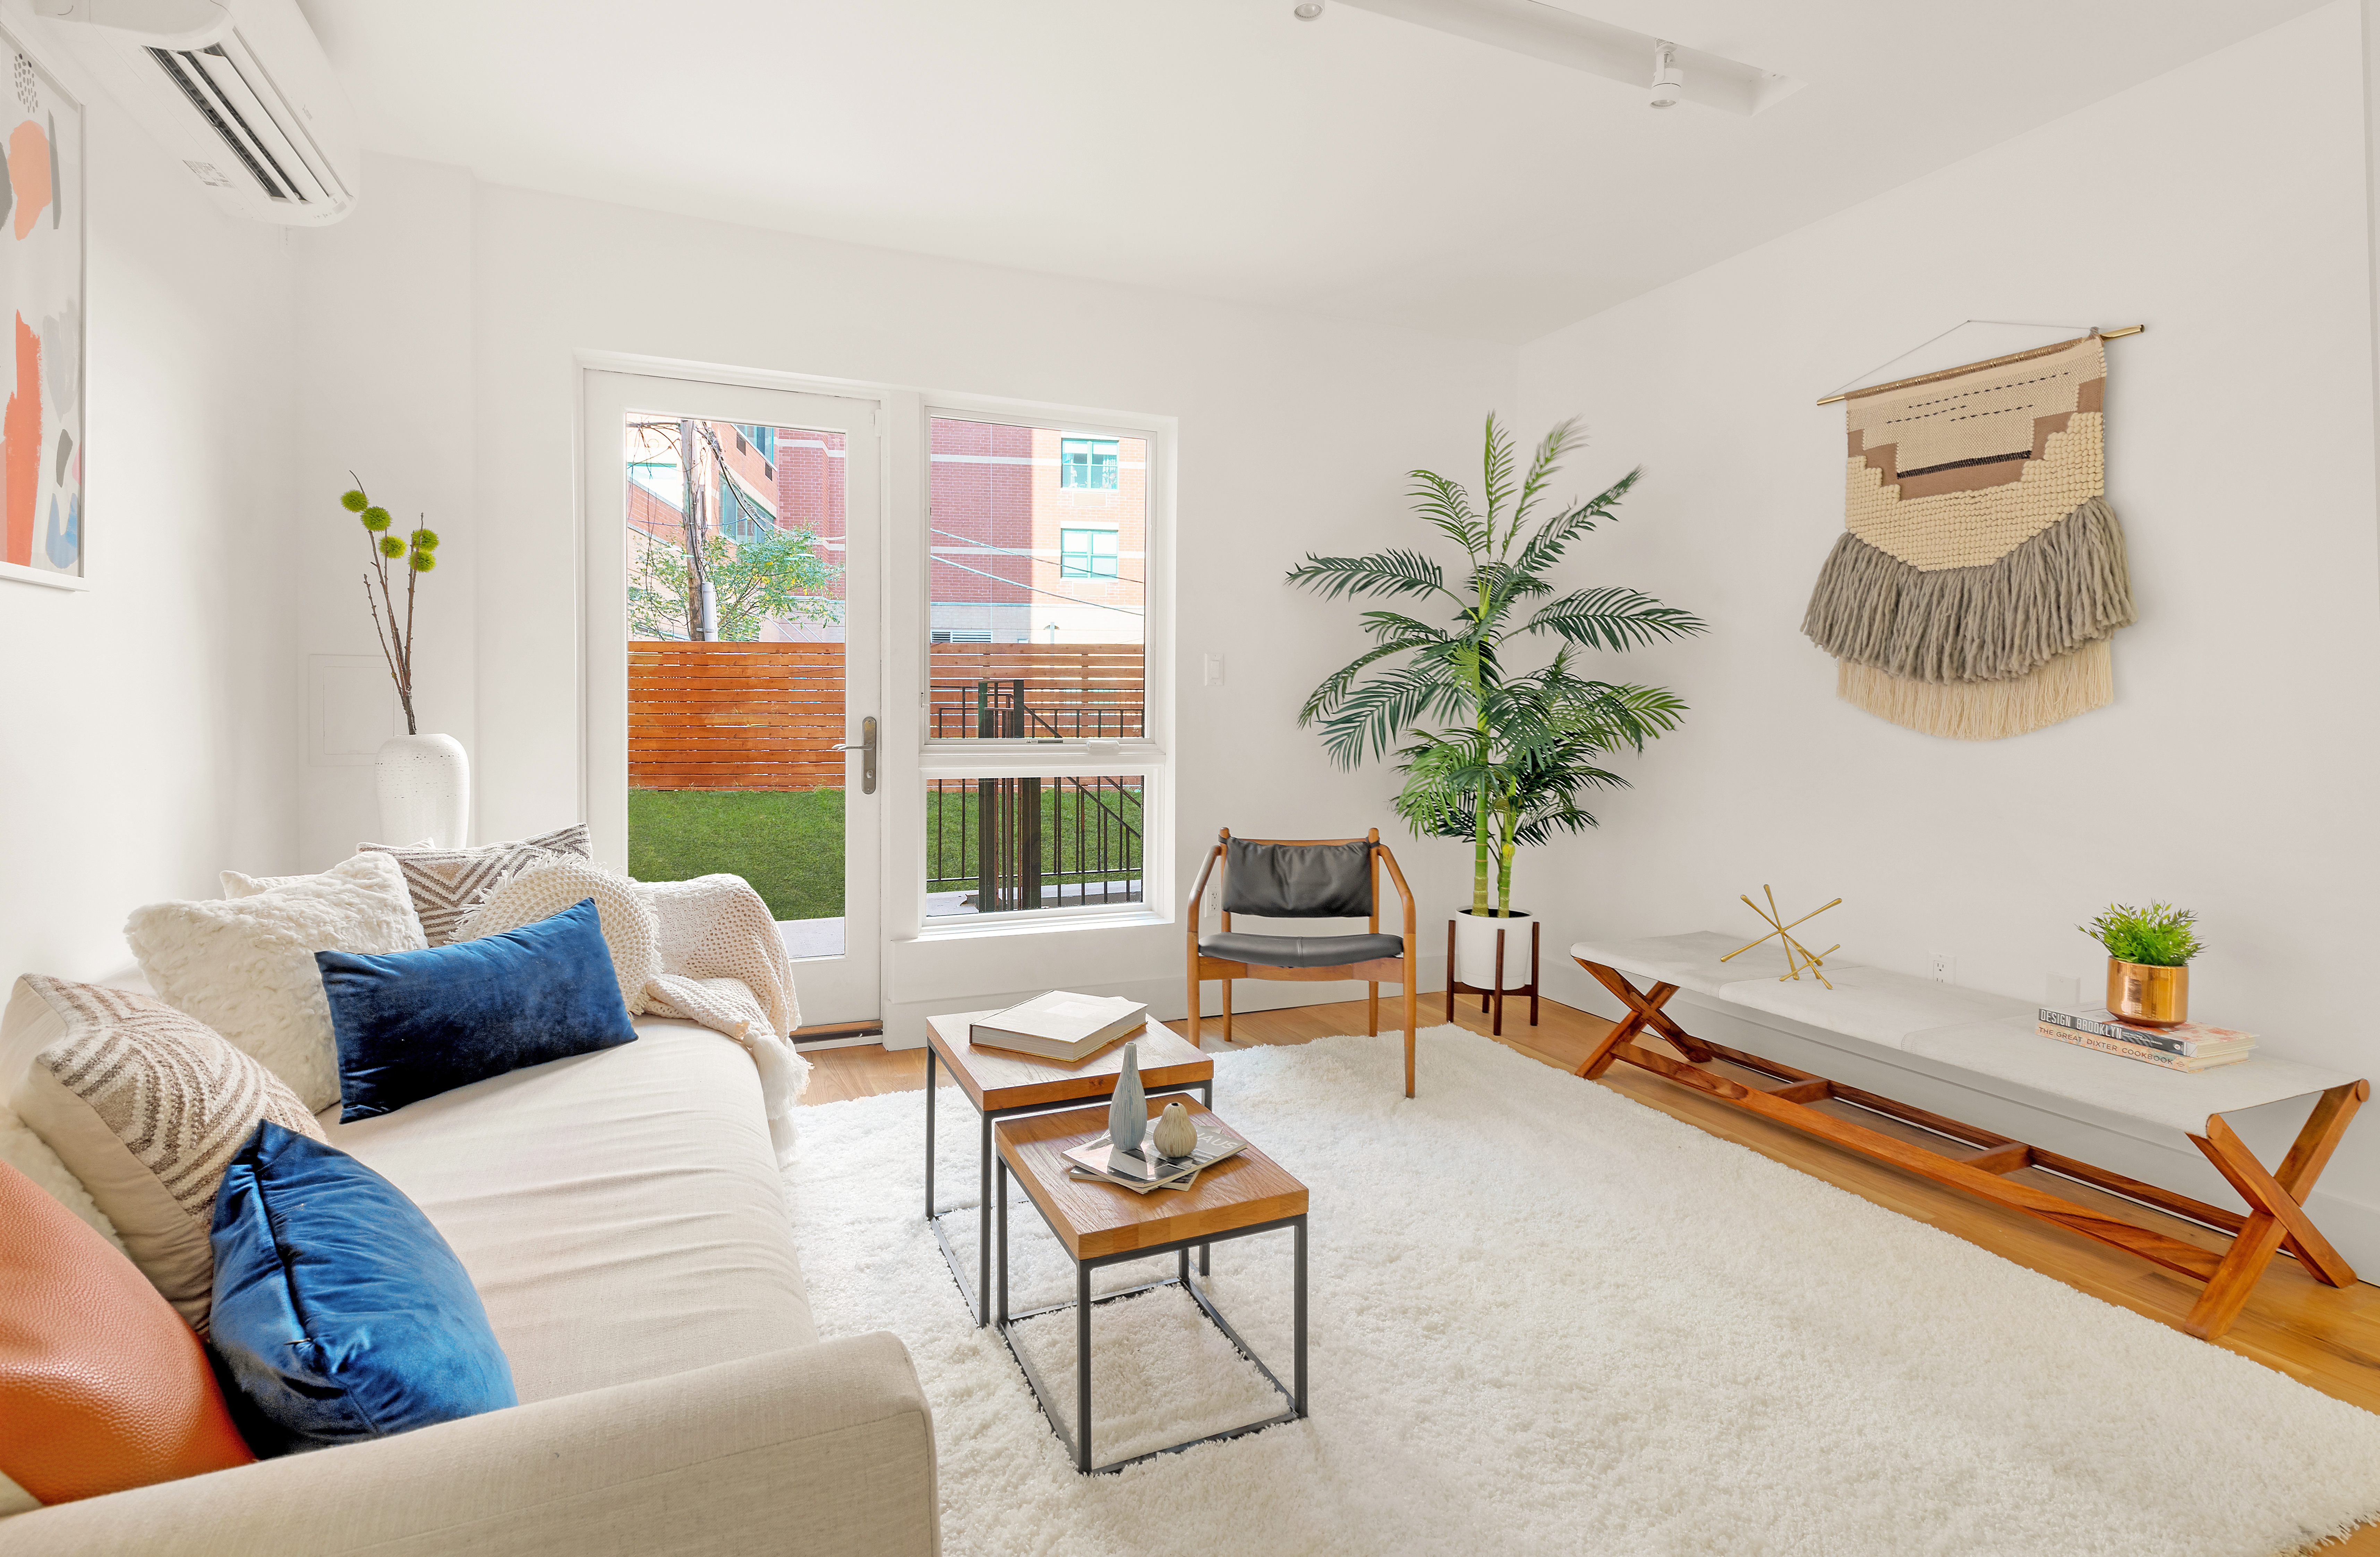 A living room with a white rug, a door that leads to a backyard, a beige couch, two wooden coffee tables, and a planter.